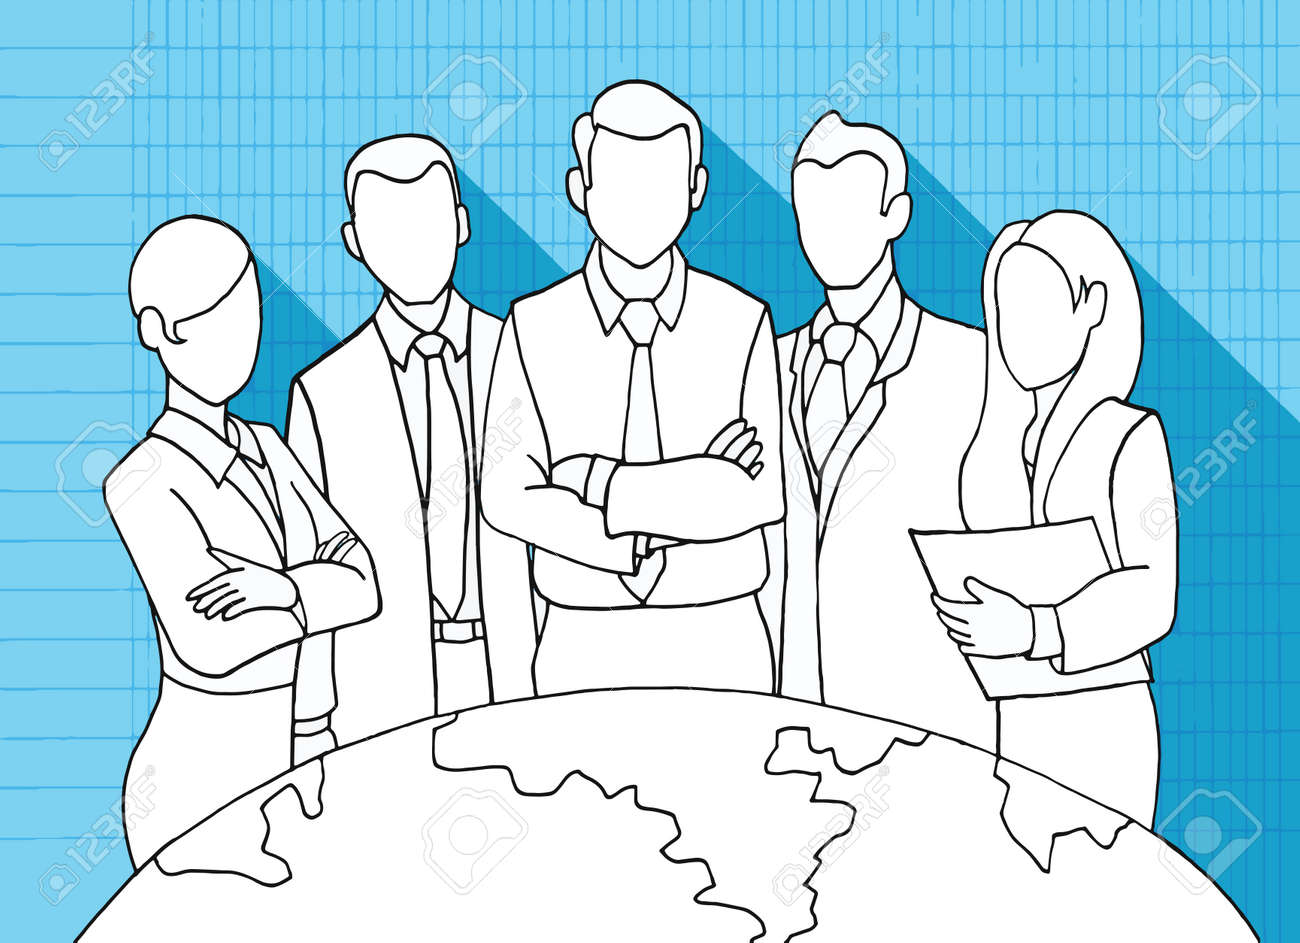 hand drawing successful team leader a team of successful hand drawing successful team leader a team of successful executives led by a great and